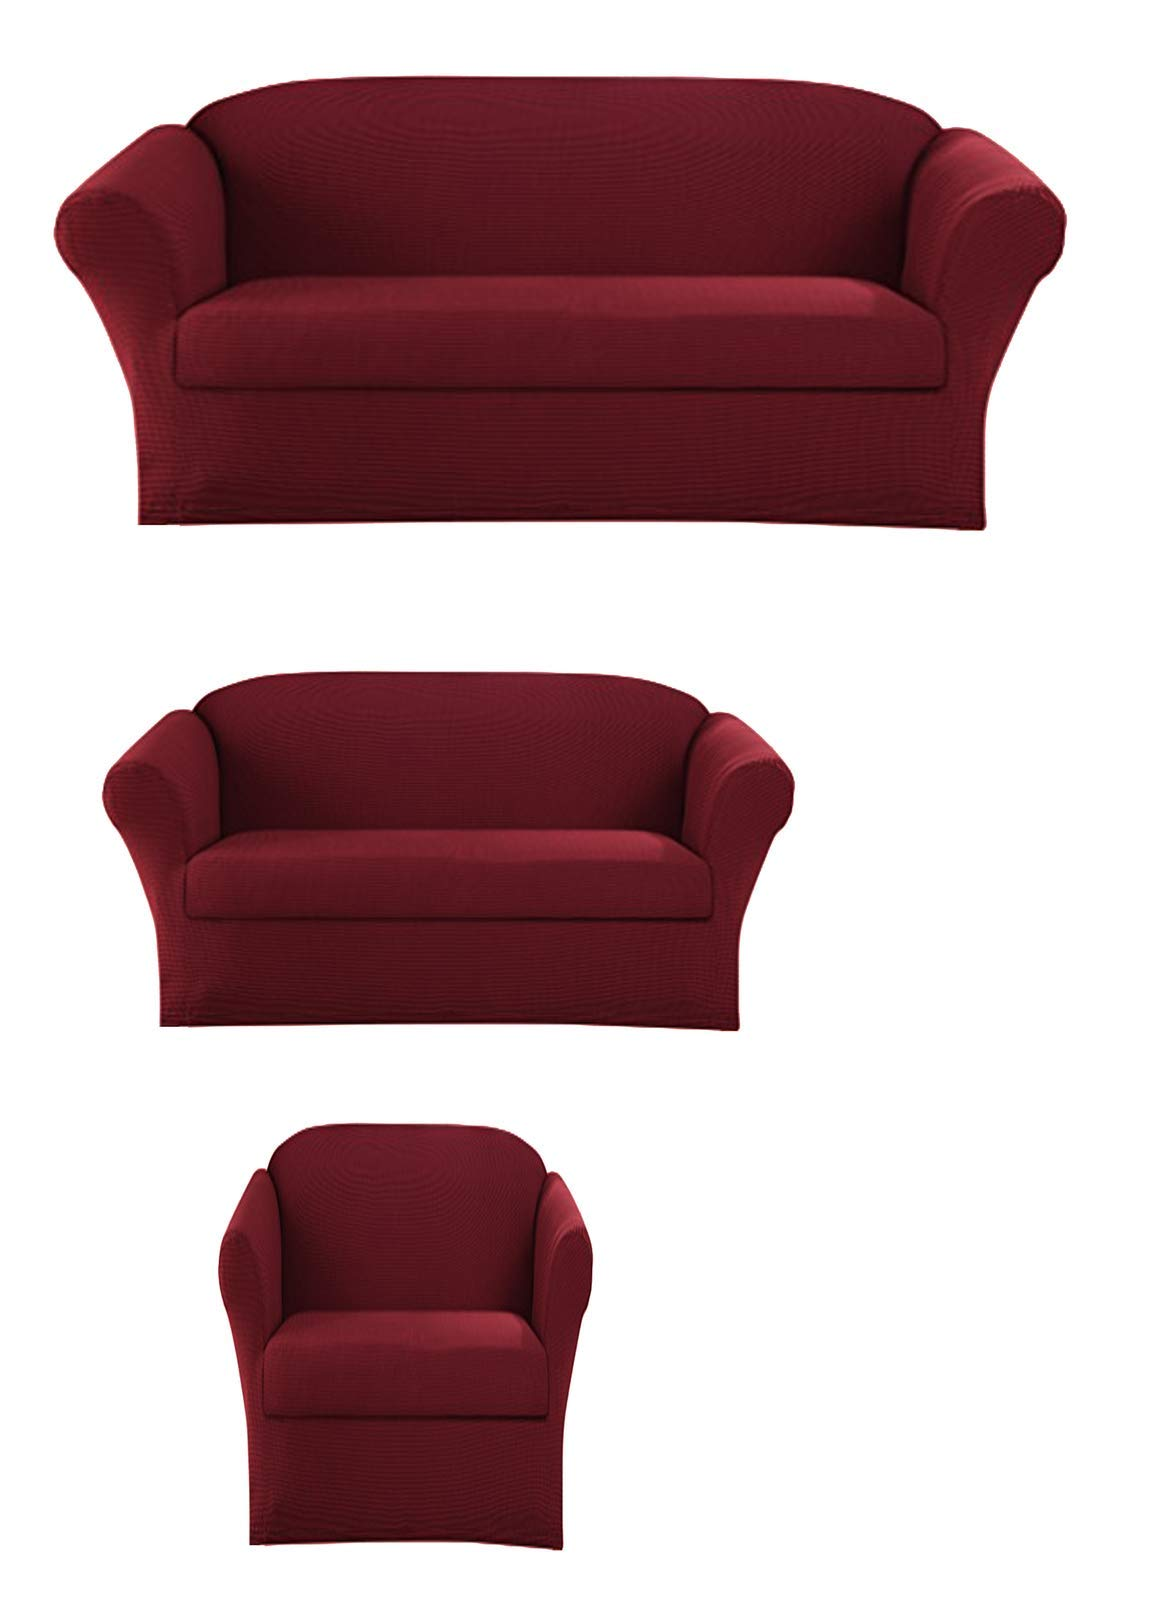 Sapphire Home 3-Piece SlipCover Set for Sofa Loveseat Couch & Arm Chair, Form fit Stretch & Wrinkle Free, Furniture Protector Cover Set for 3/2/1 Cushion, Polyester Spandex, 3pc Slipcover, Burgundy by Sapphire Home